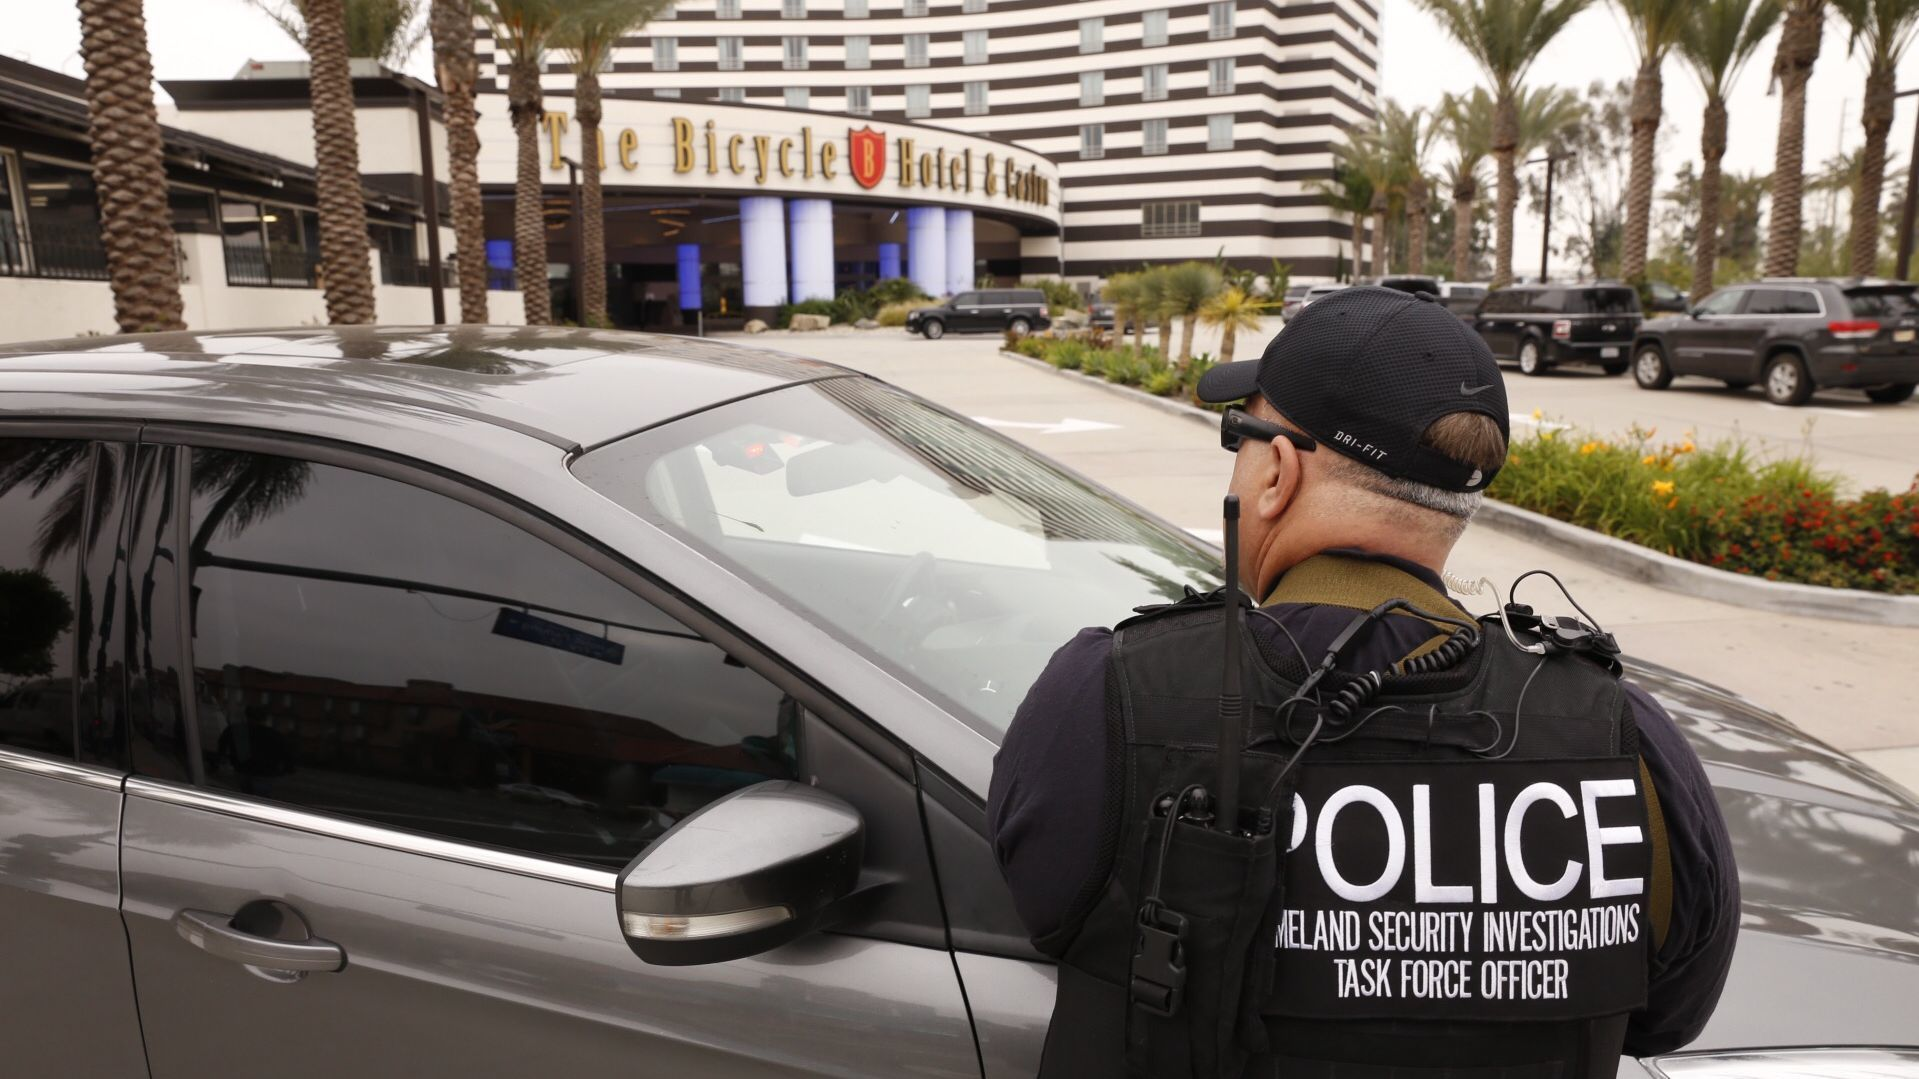 Bicycle Hotel Casino in Bell Gardens reopens after federal raid